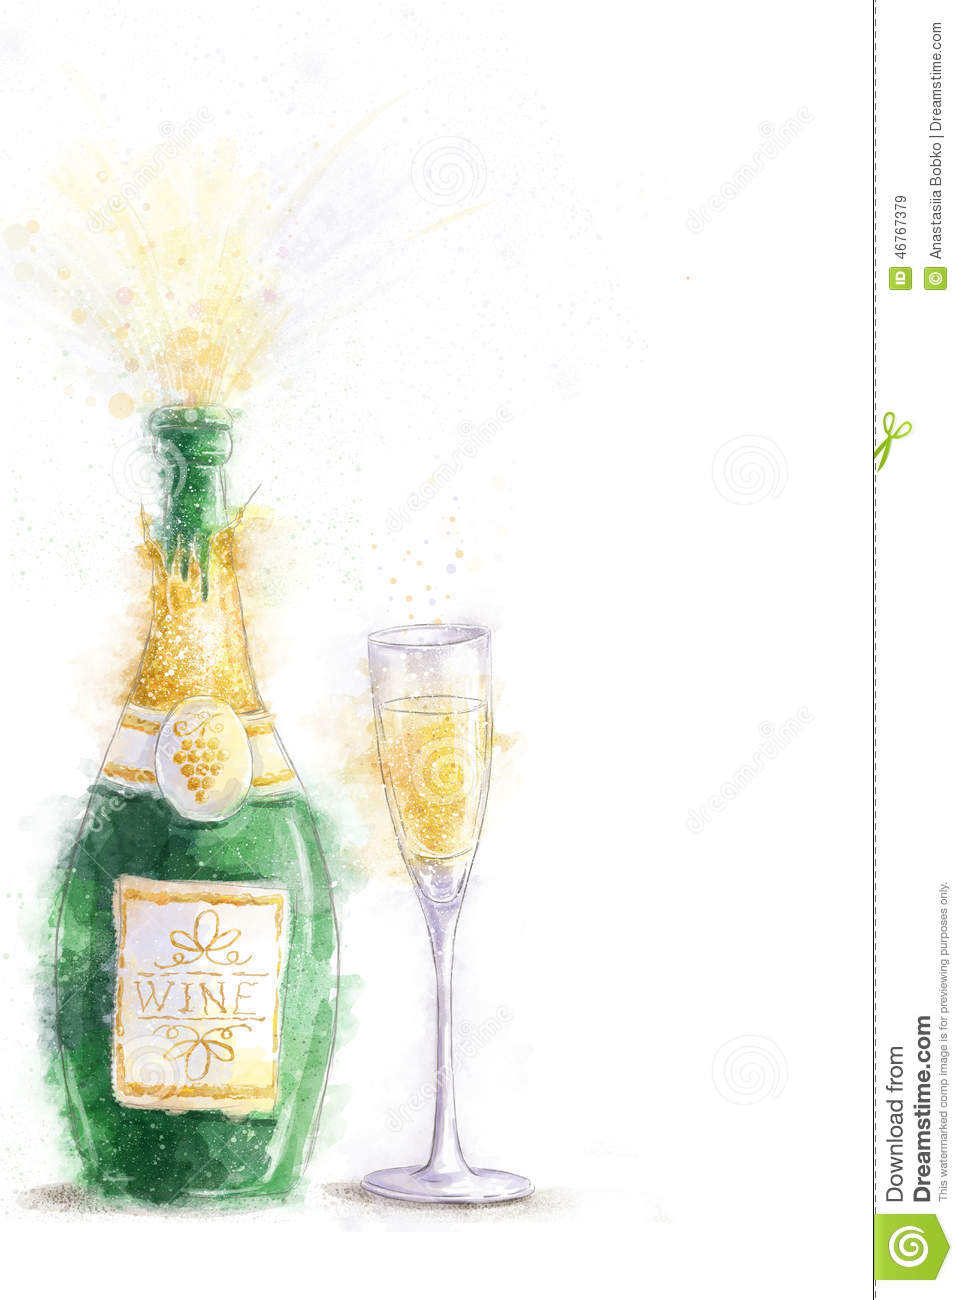 Bottle Of Champagne With Splashes On White Background With